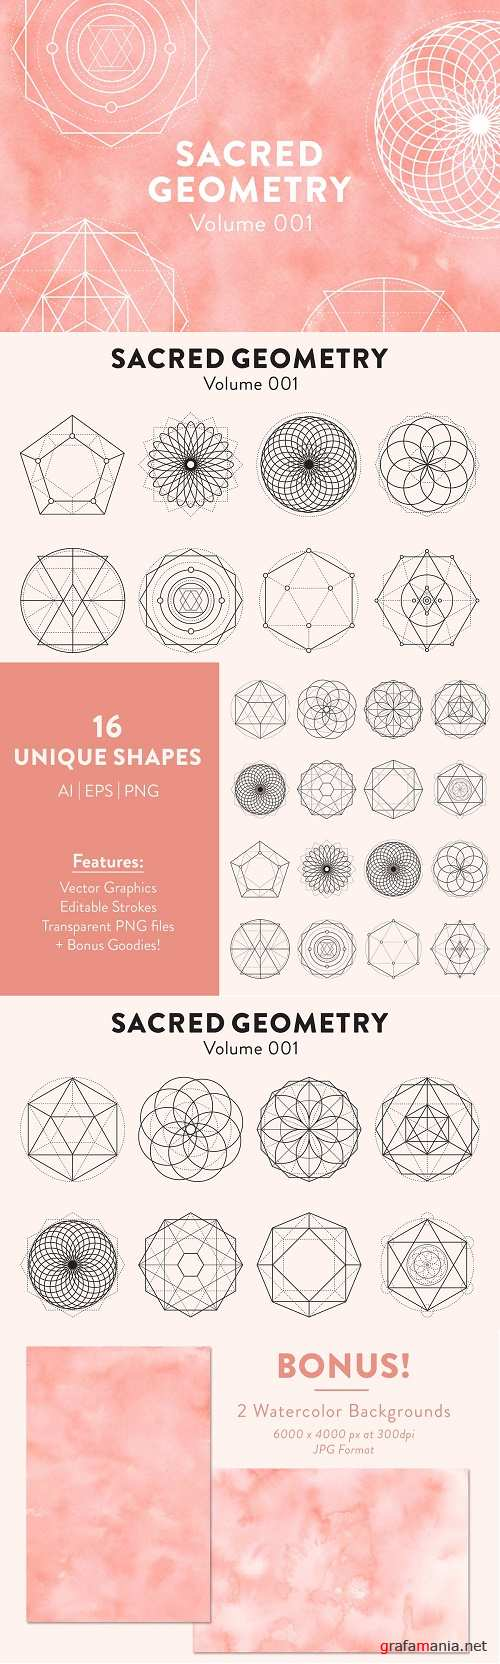 Sacred Geometry Vectors Volume 001 4134545